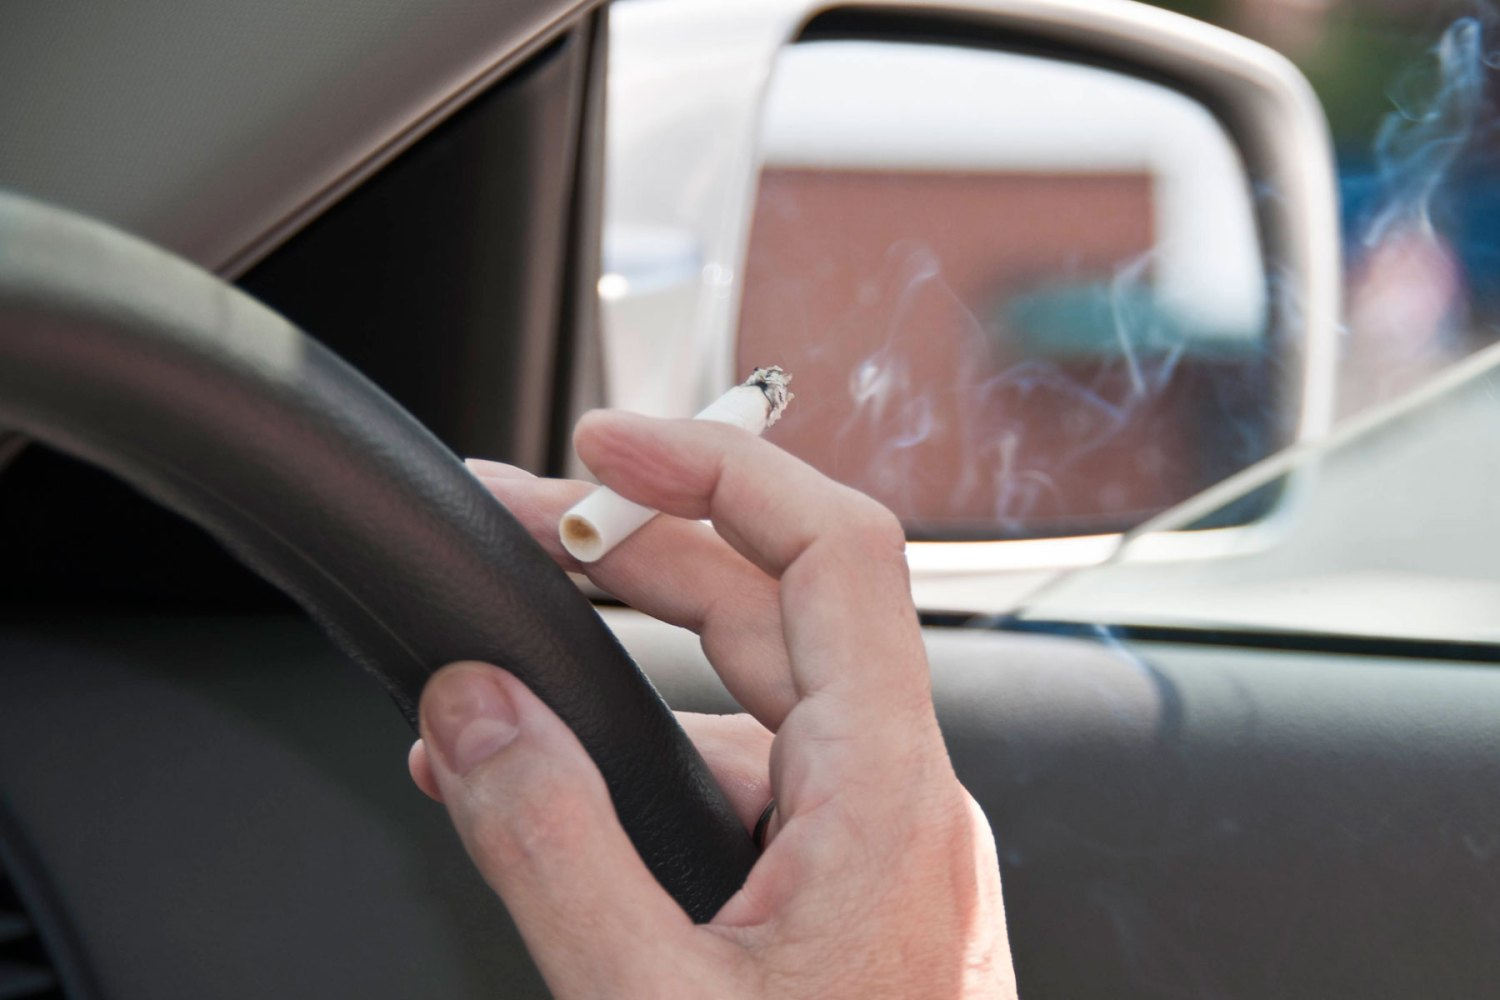 92% of motorists don't believe car smoking ban will be enforced